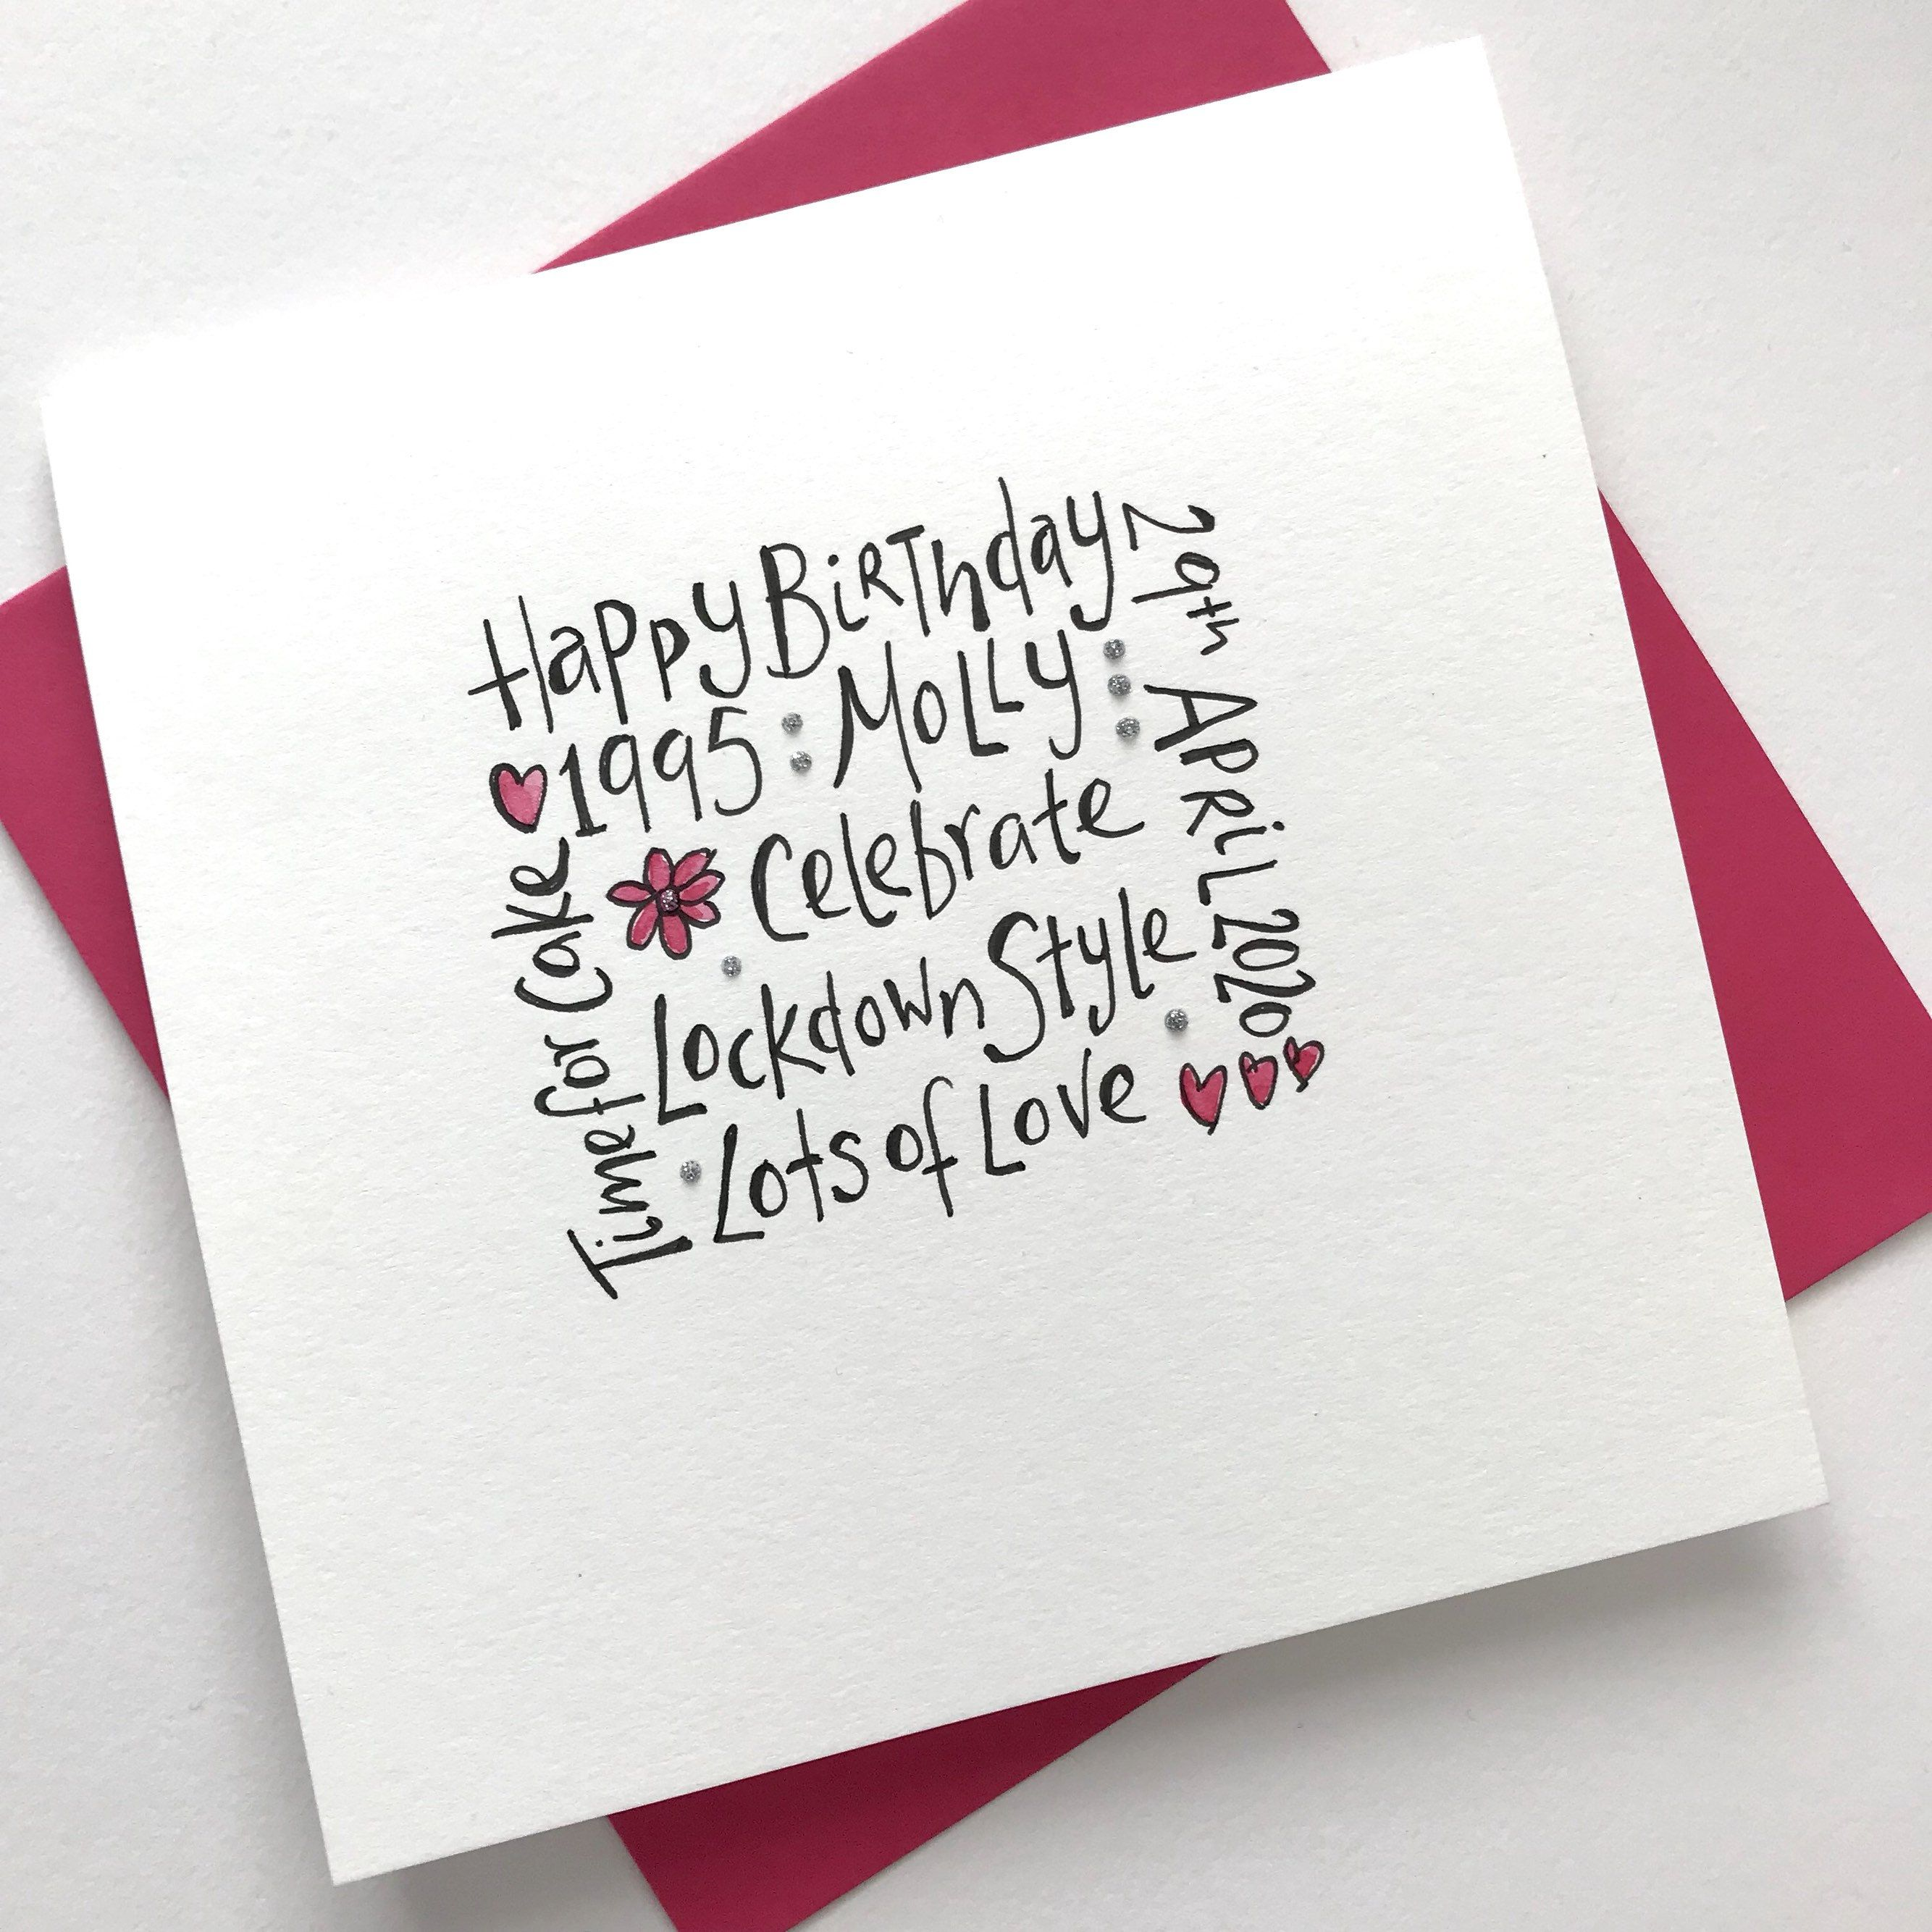 Lockdown Birthday Card Personalized Free Names Dates Location Added By Boxofsparkle On Etsy Personal Cards Cards Birthday Cards